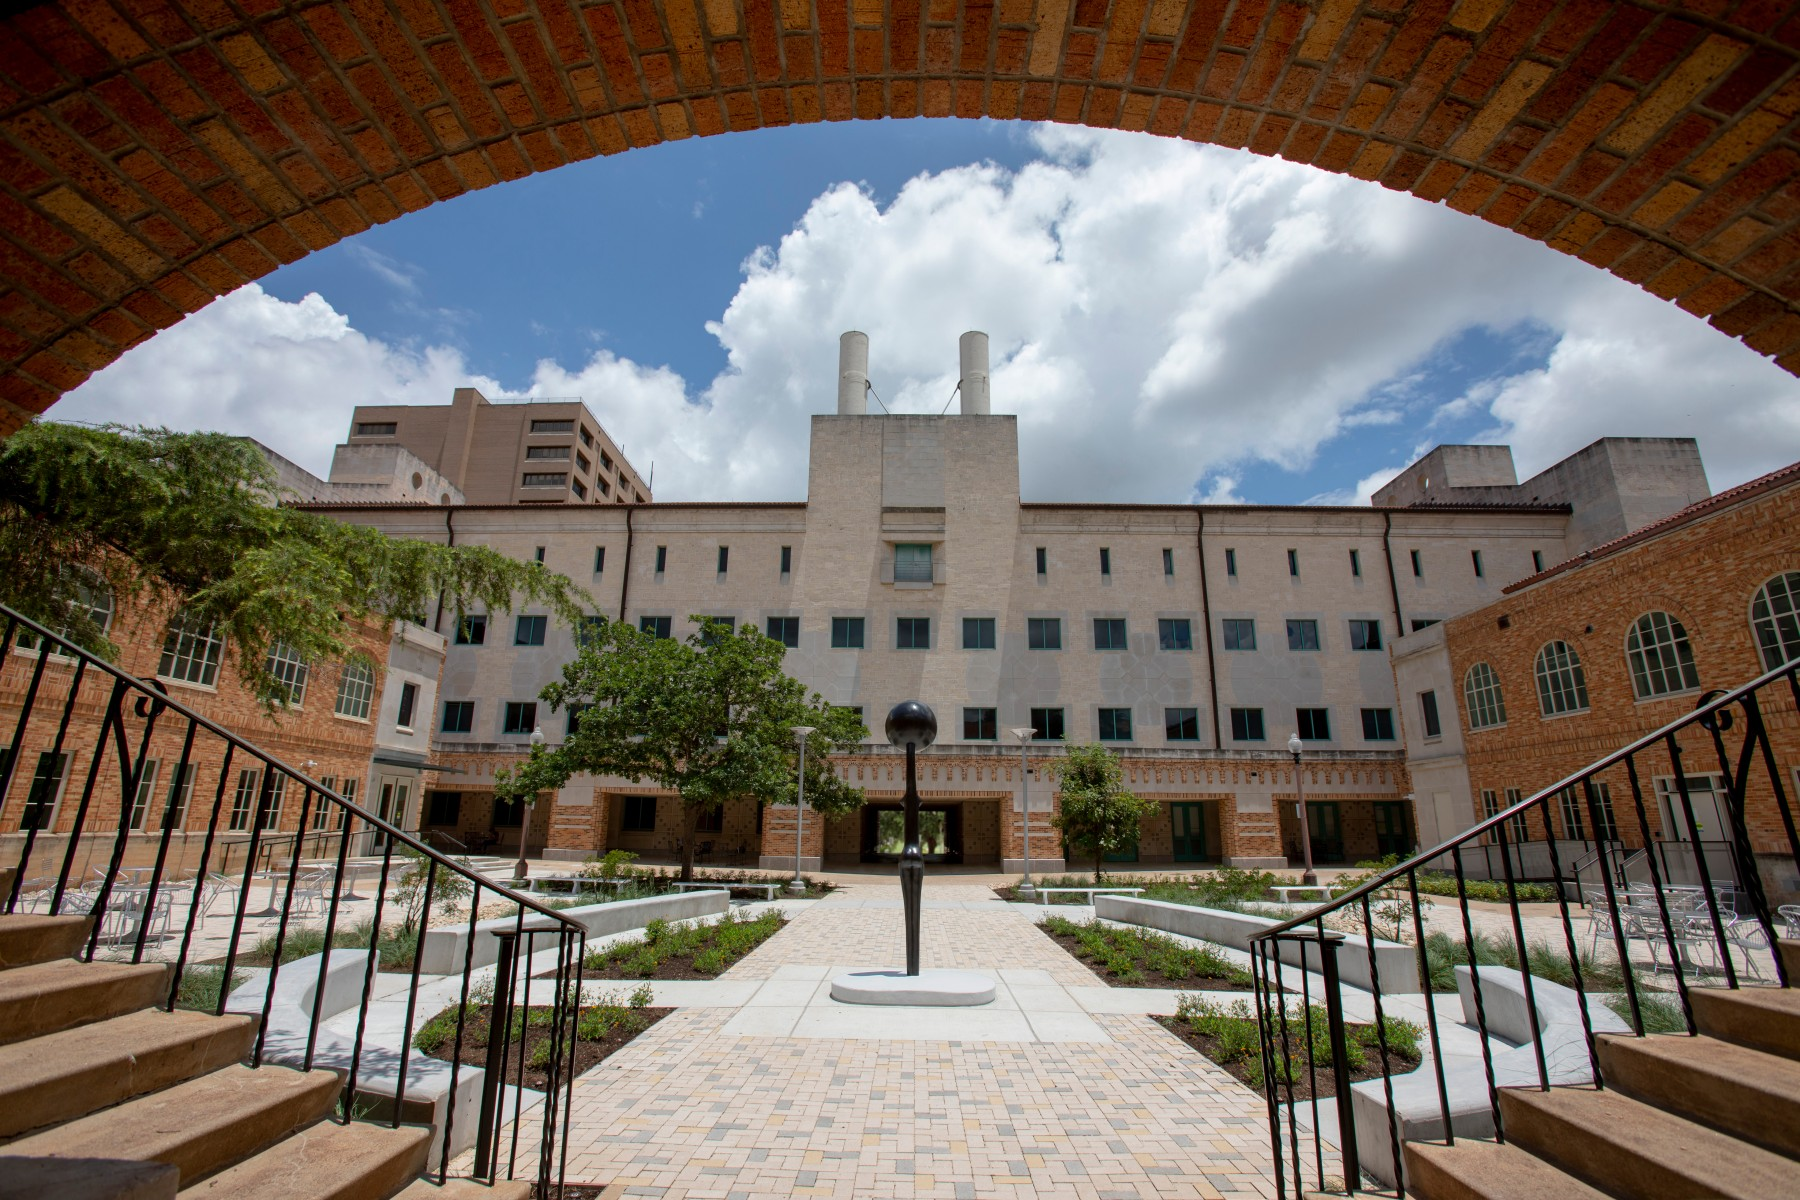 Sentinel IV, seen from behind. The work is centered in a landscaped courtyard. An apeture created by the building frames the work in this image with the circular ceiling coming down and two staircases framing the bottom edge.